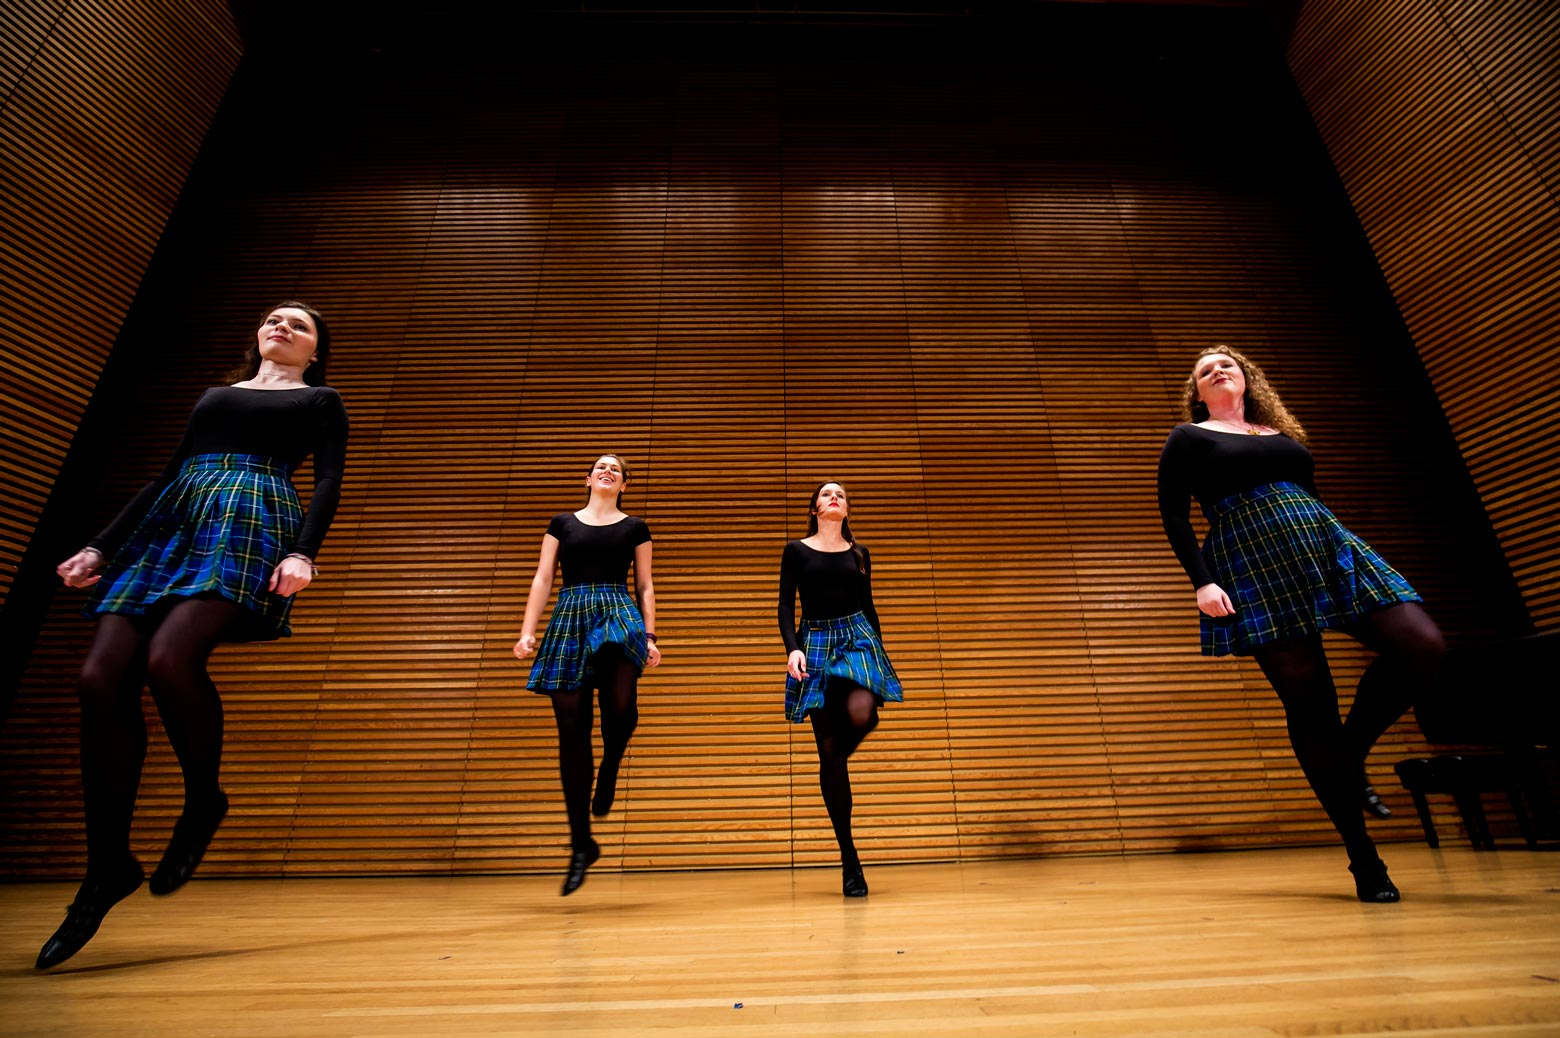 Leim Irish Dance group performs on stage